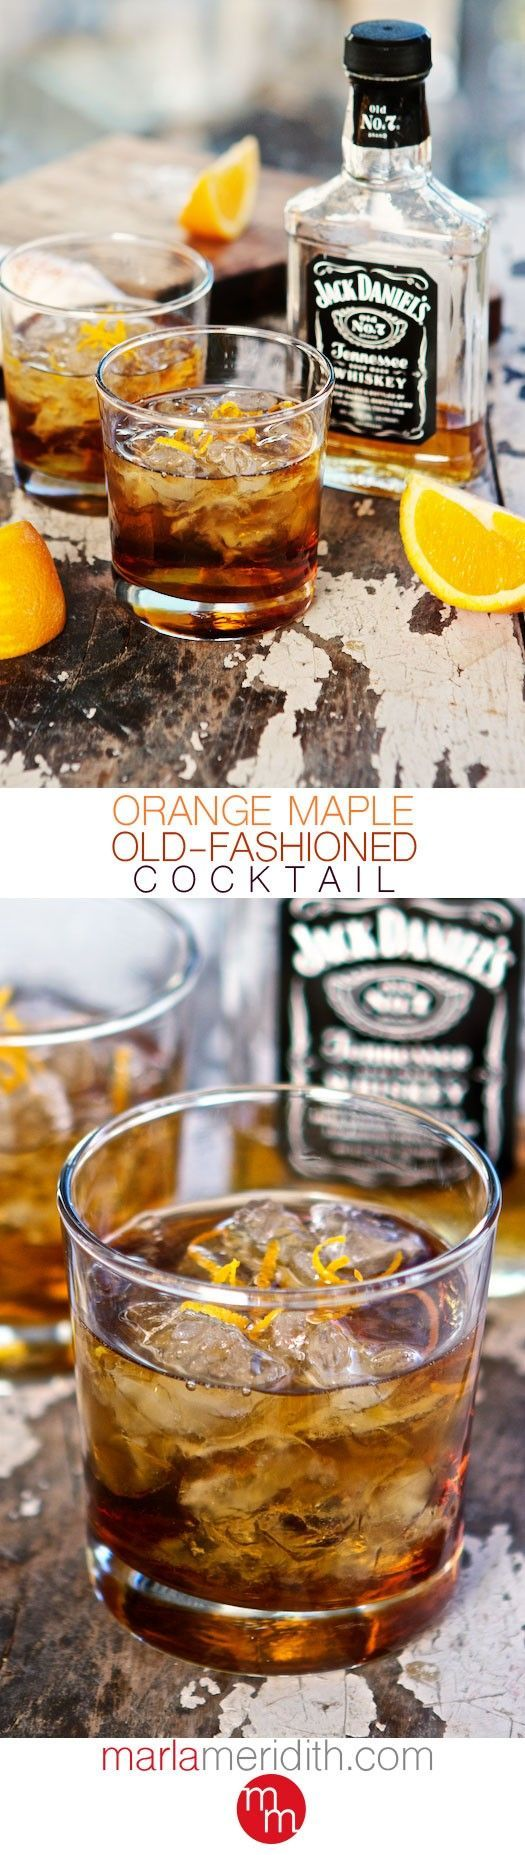 Orange Maple Old-Fashioned Cocktail   A Whiskey Lover's Drink…